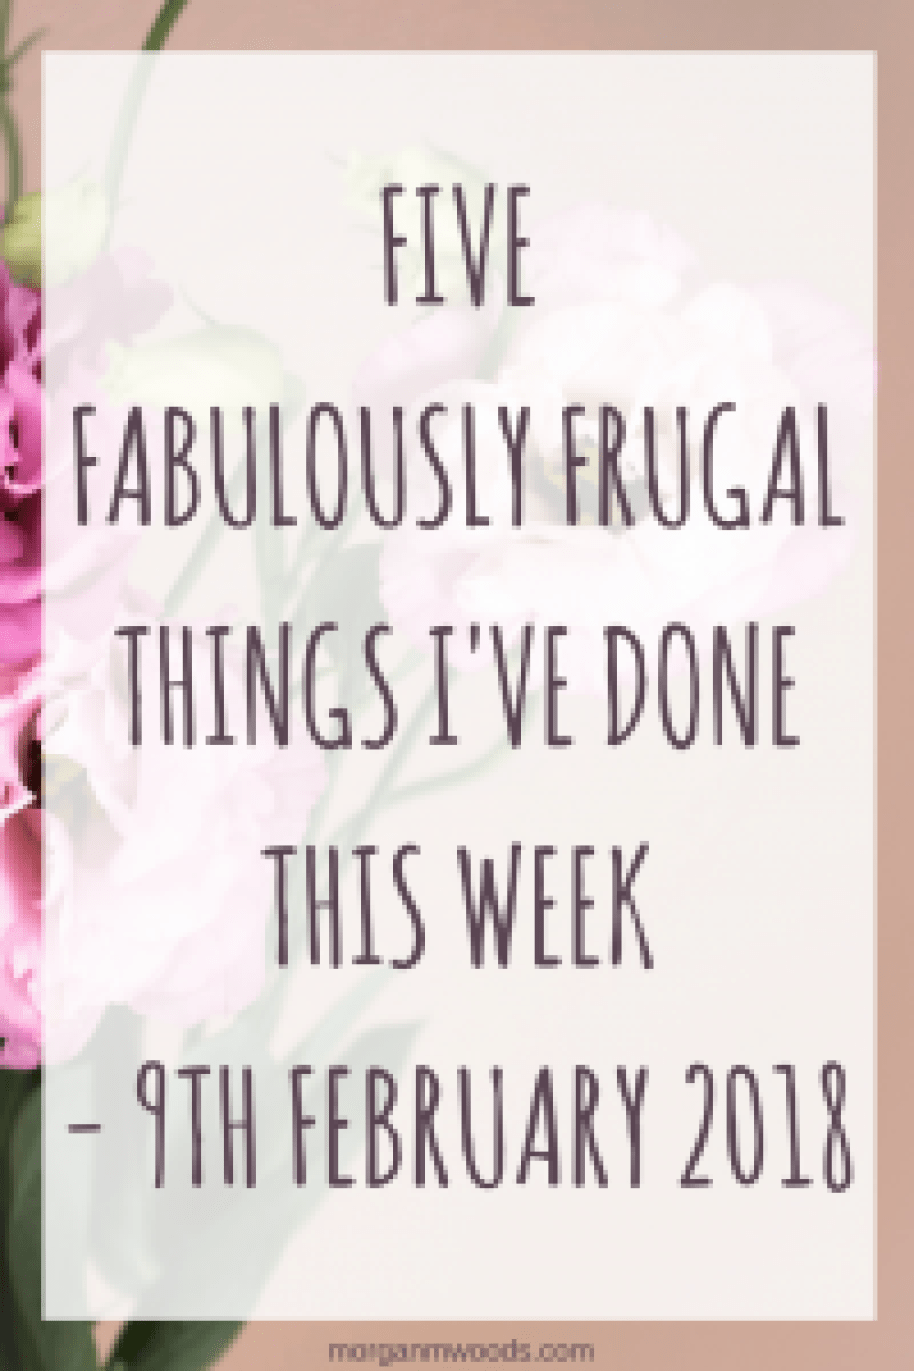 Five fabulously frugal things I've done this week - 9th February 2018